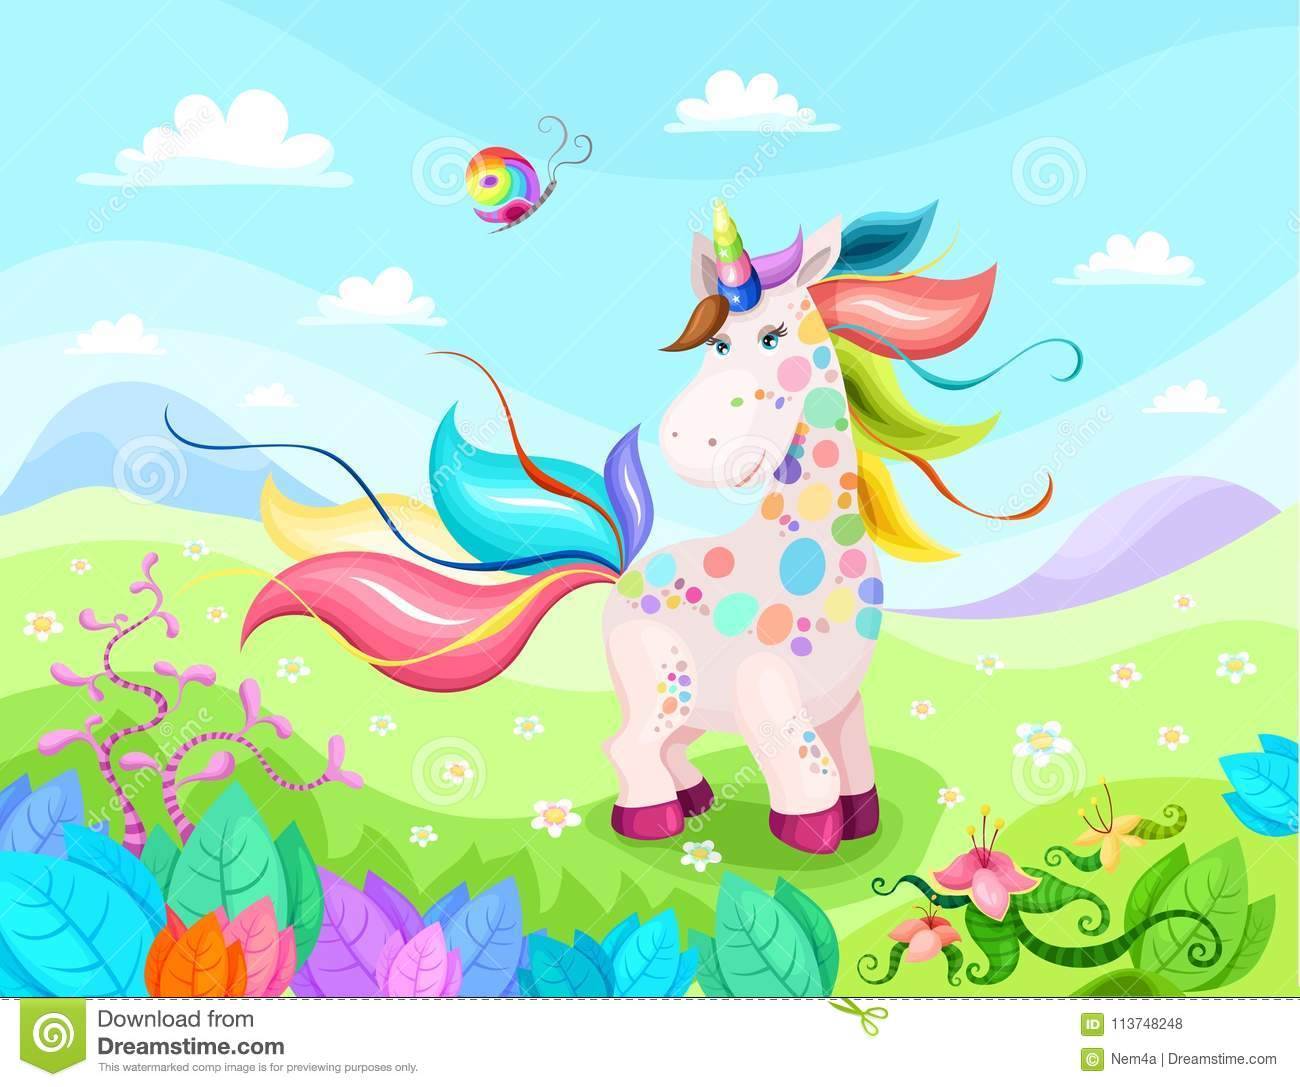 Magic unicorn illustration with beautiful background